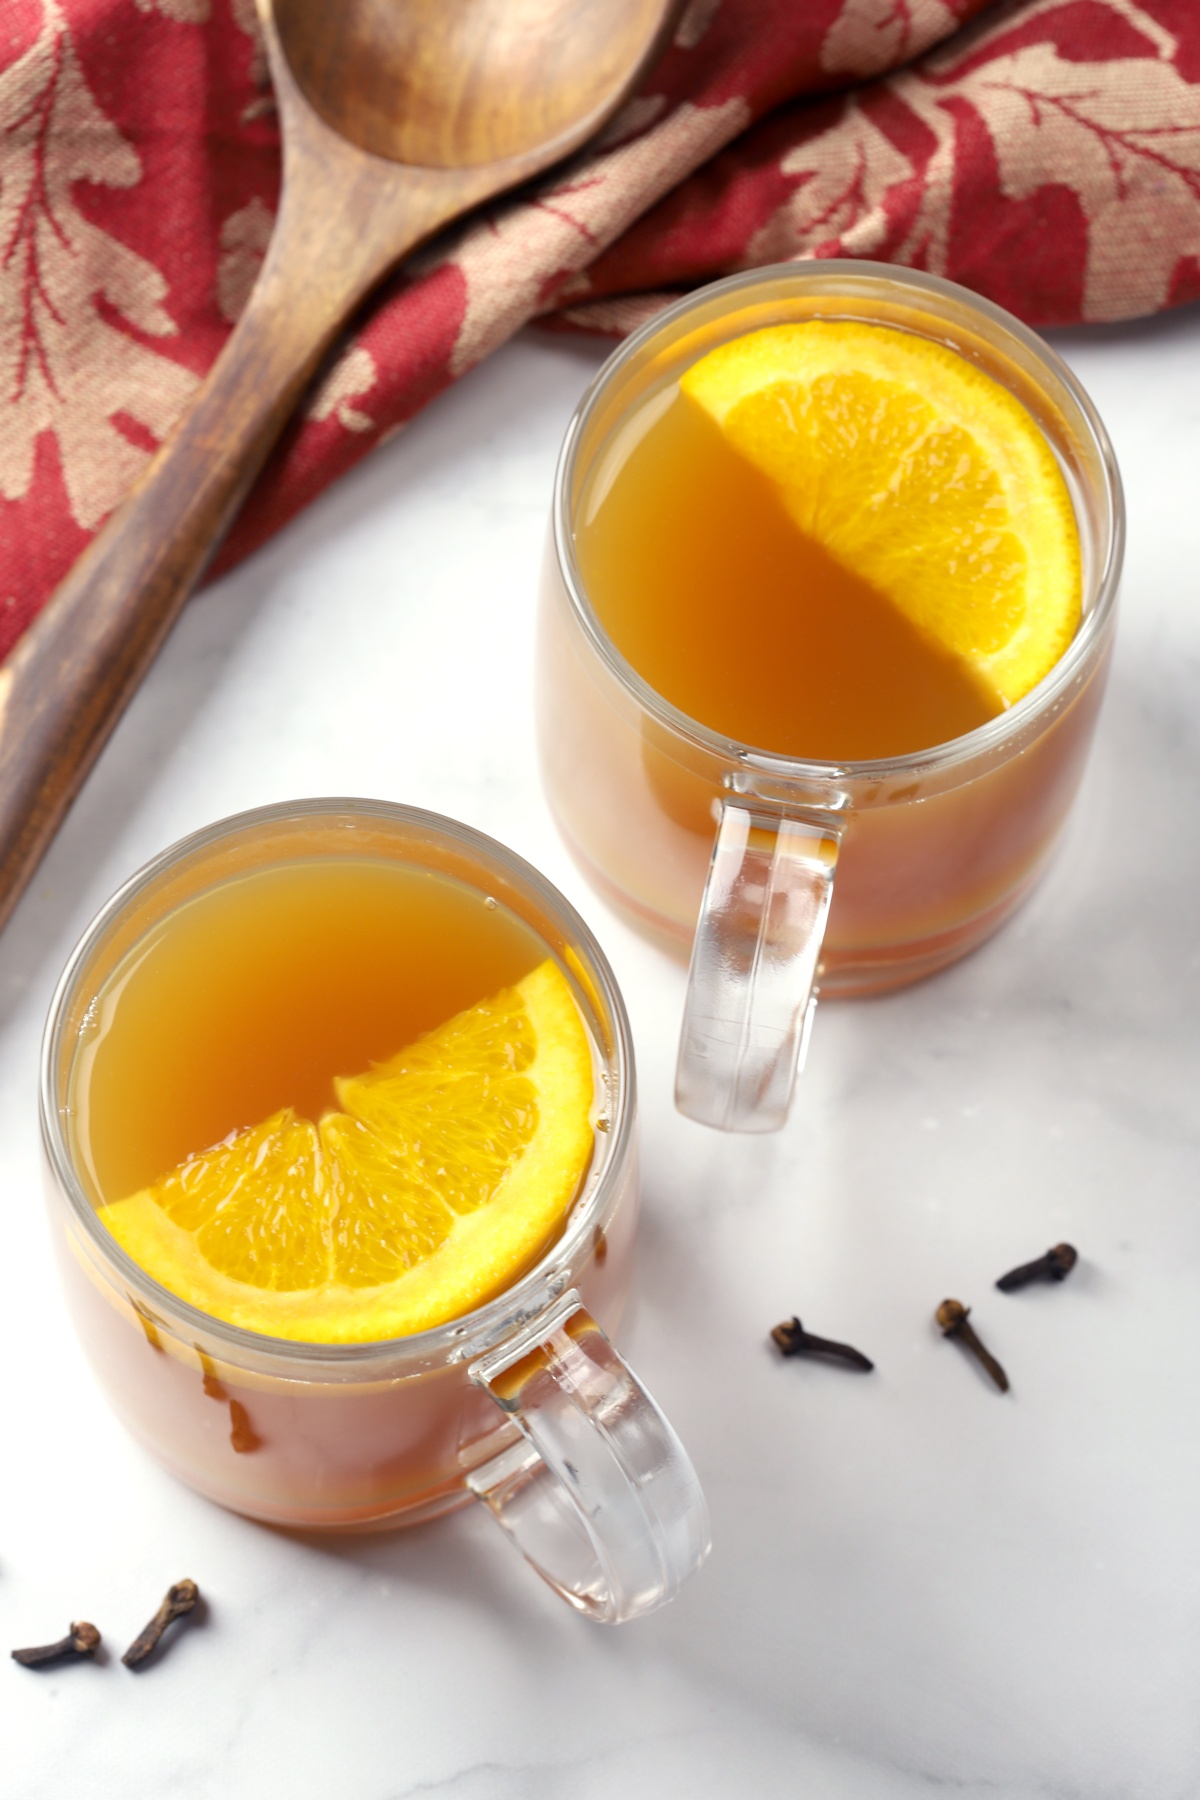 Two glass mugs filled with cider and topped with an orange slice.